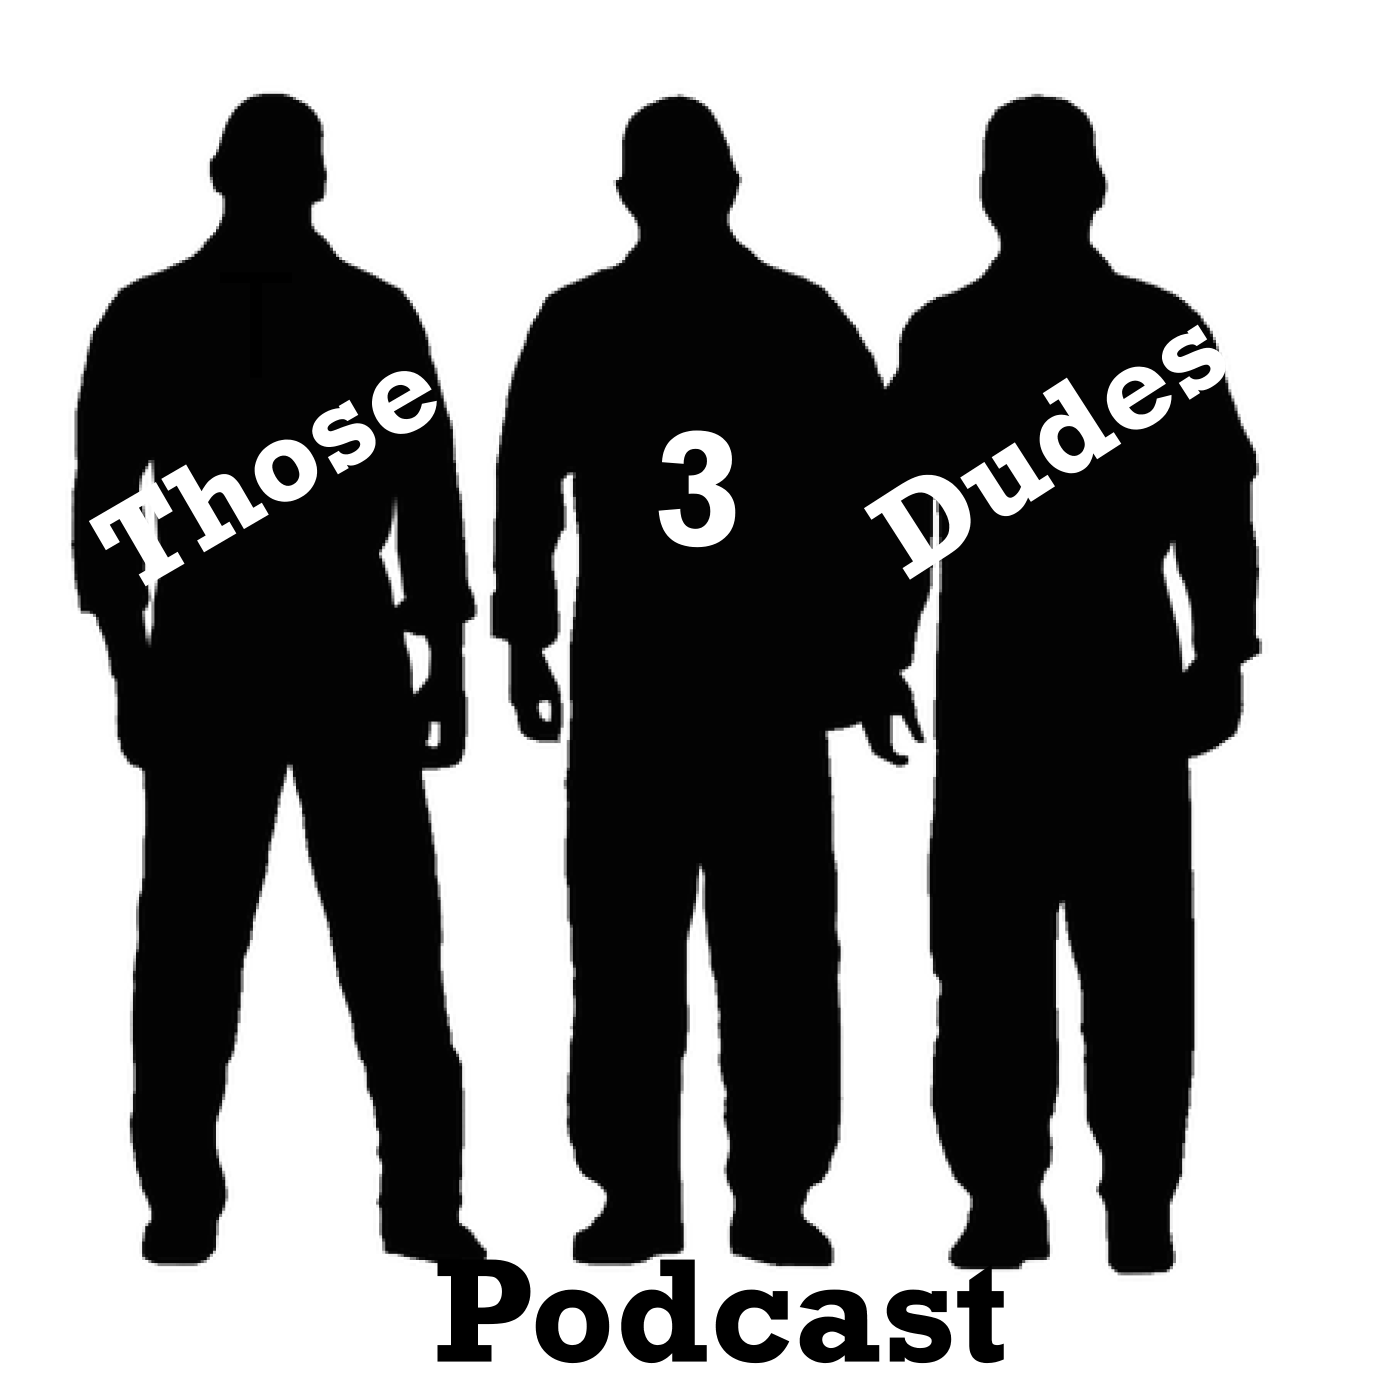 Those 3 Dudes Podcast